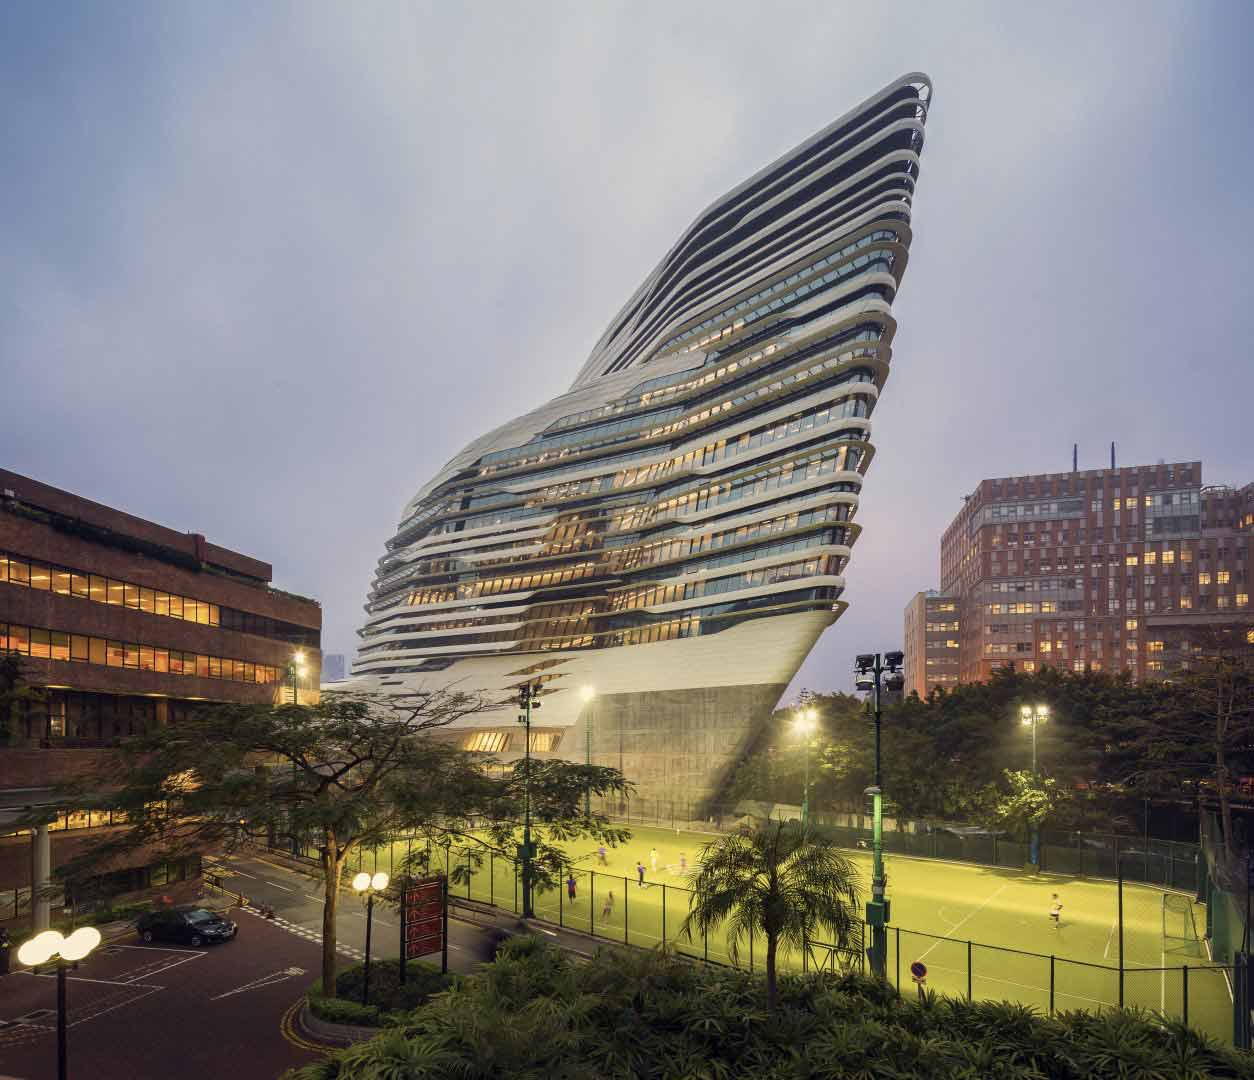 zaha-hadid-jockey-club-innovation-tower